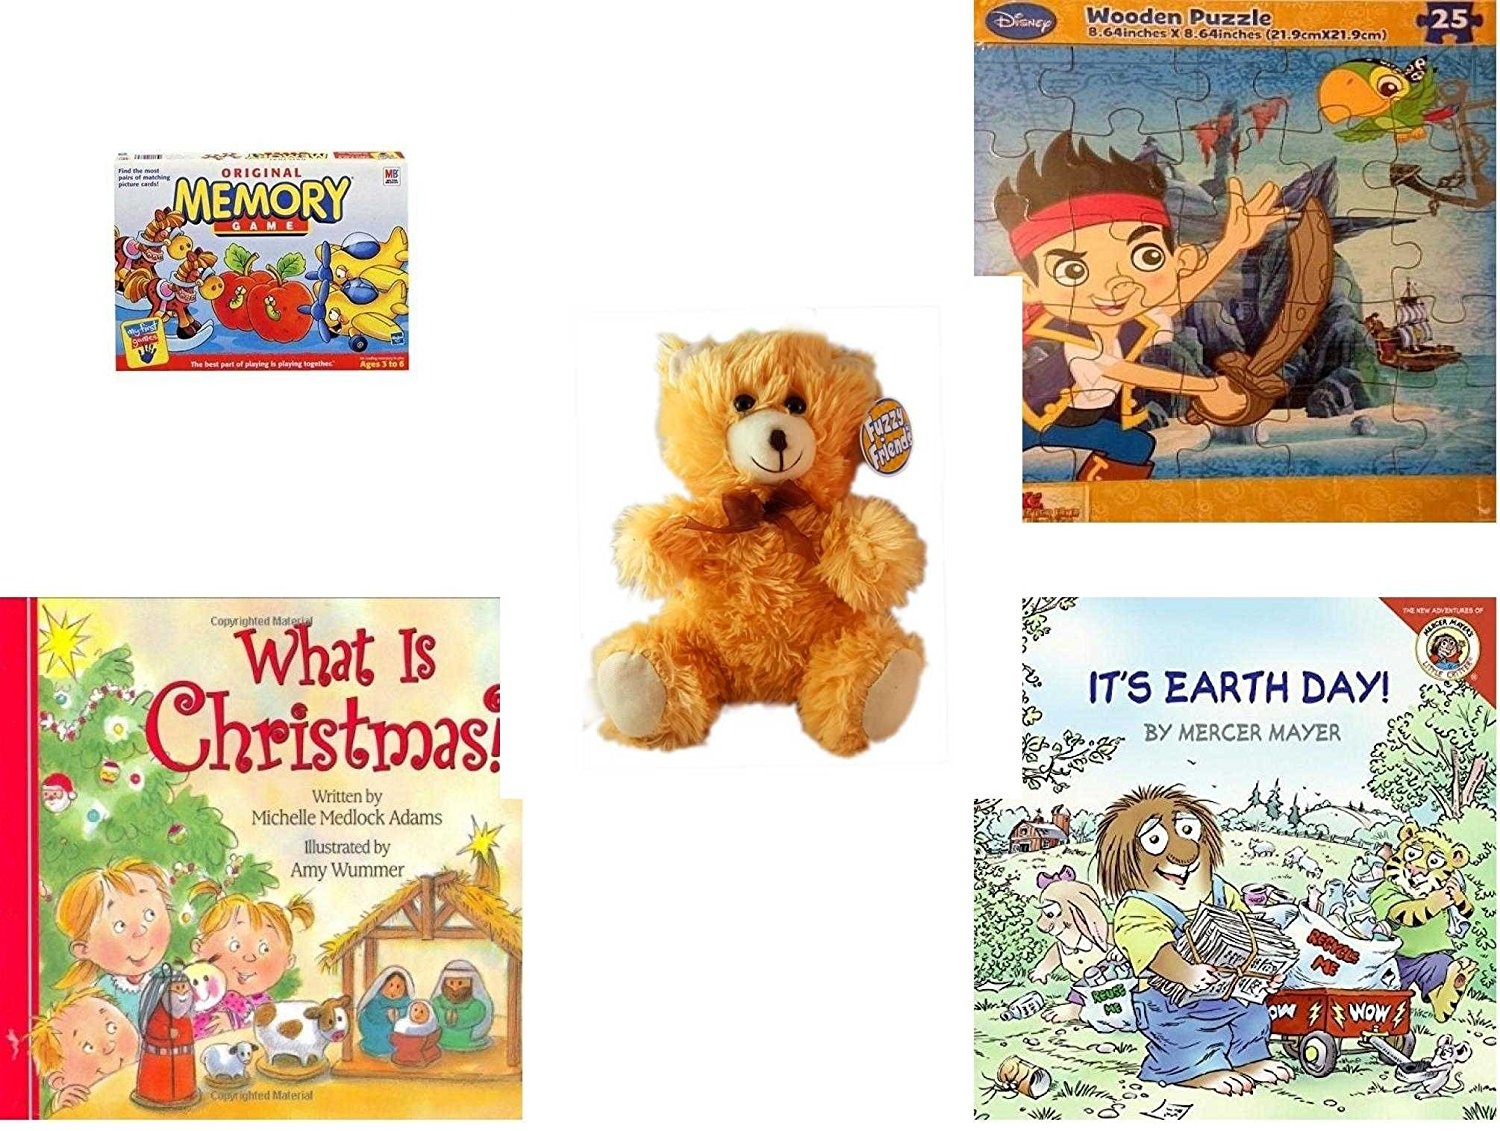 """Children's Gift Bundle - Ages 3-5 [5 Piece] - Original Memory Game - Horses, Apples, Planes Edition - Disney Jake and The Never Land Pirates Puzzle Toy - Fuzzy Friends Teddy Bear Plush 9"""" - What Is"""